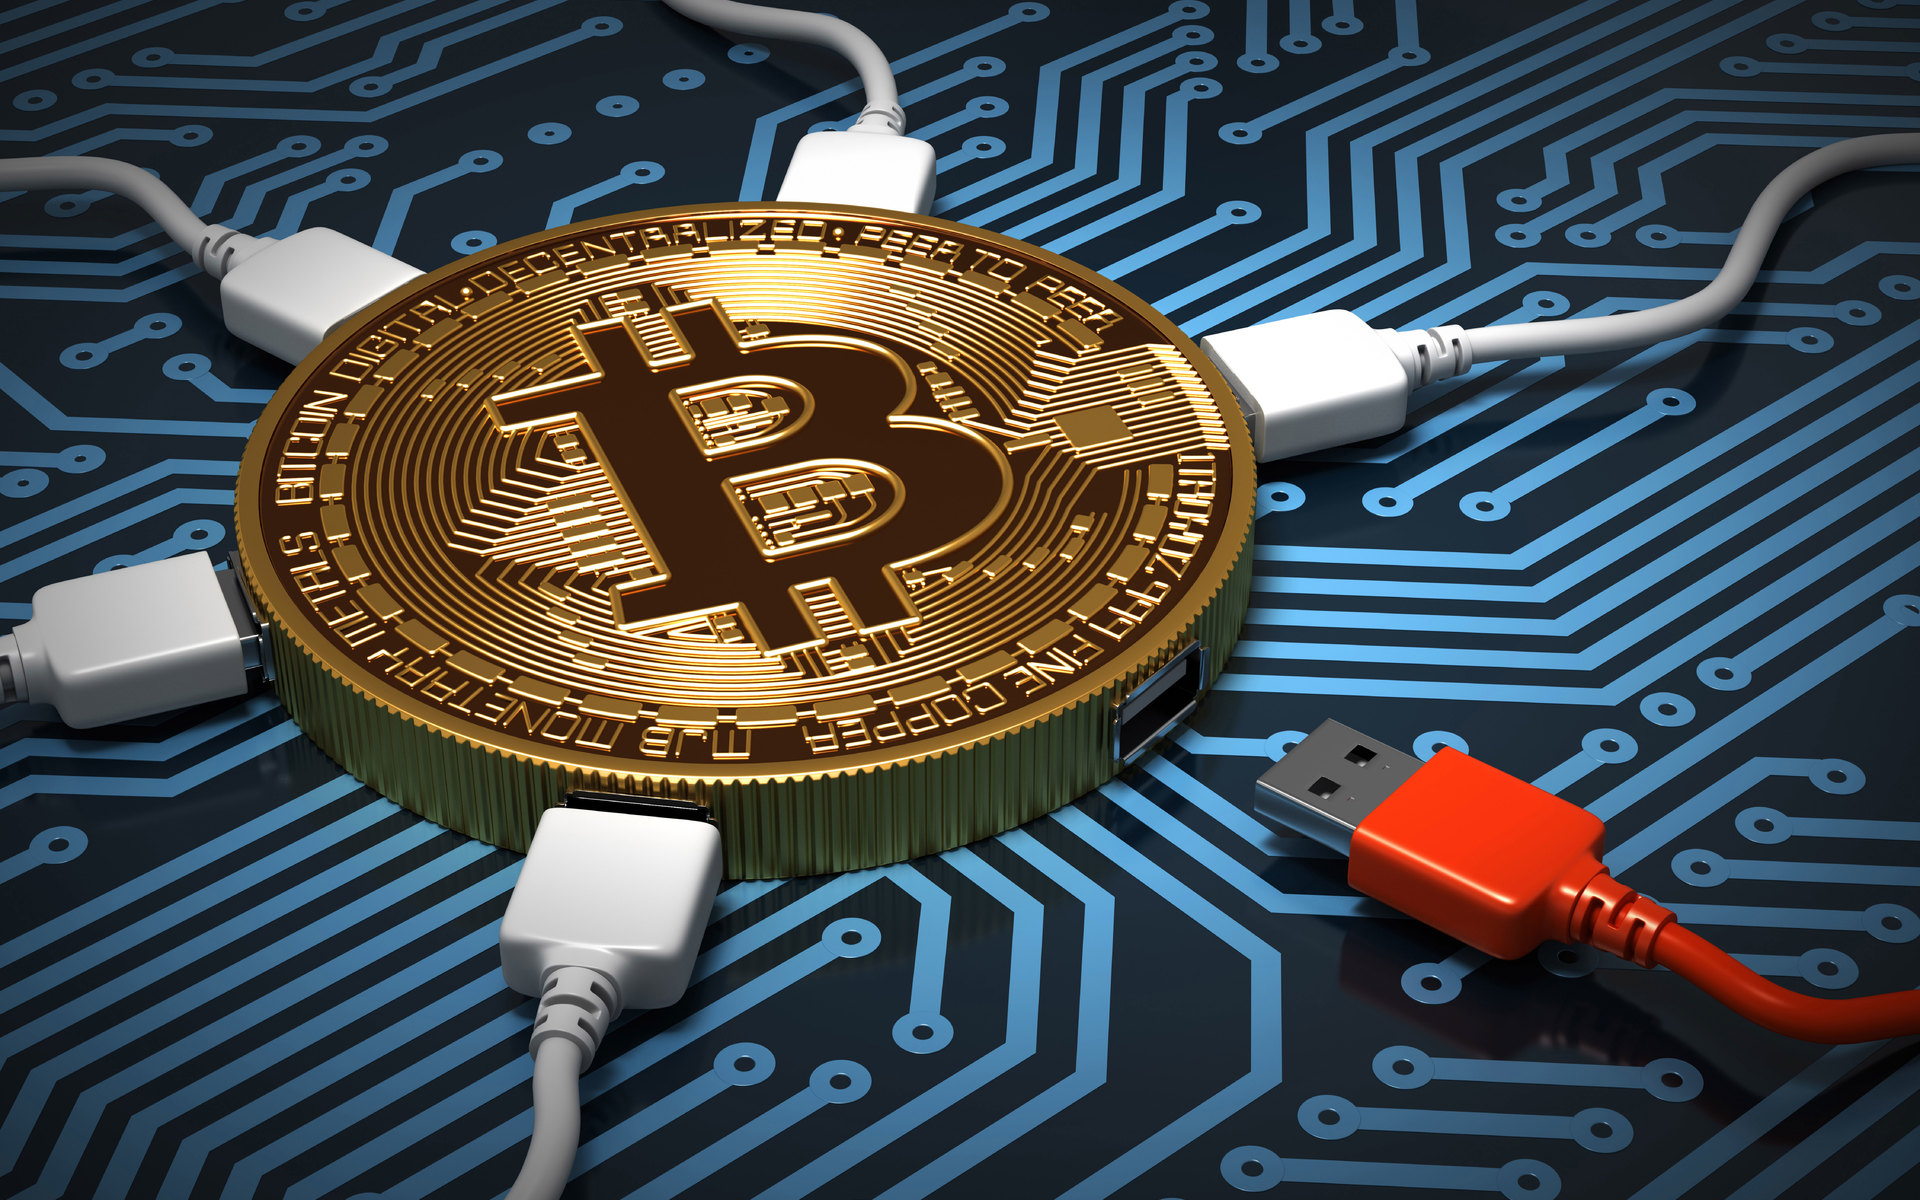 Google Search Requests for 'Bitcoin' Tripled During Recent Price Surge